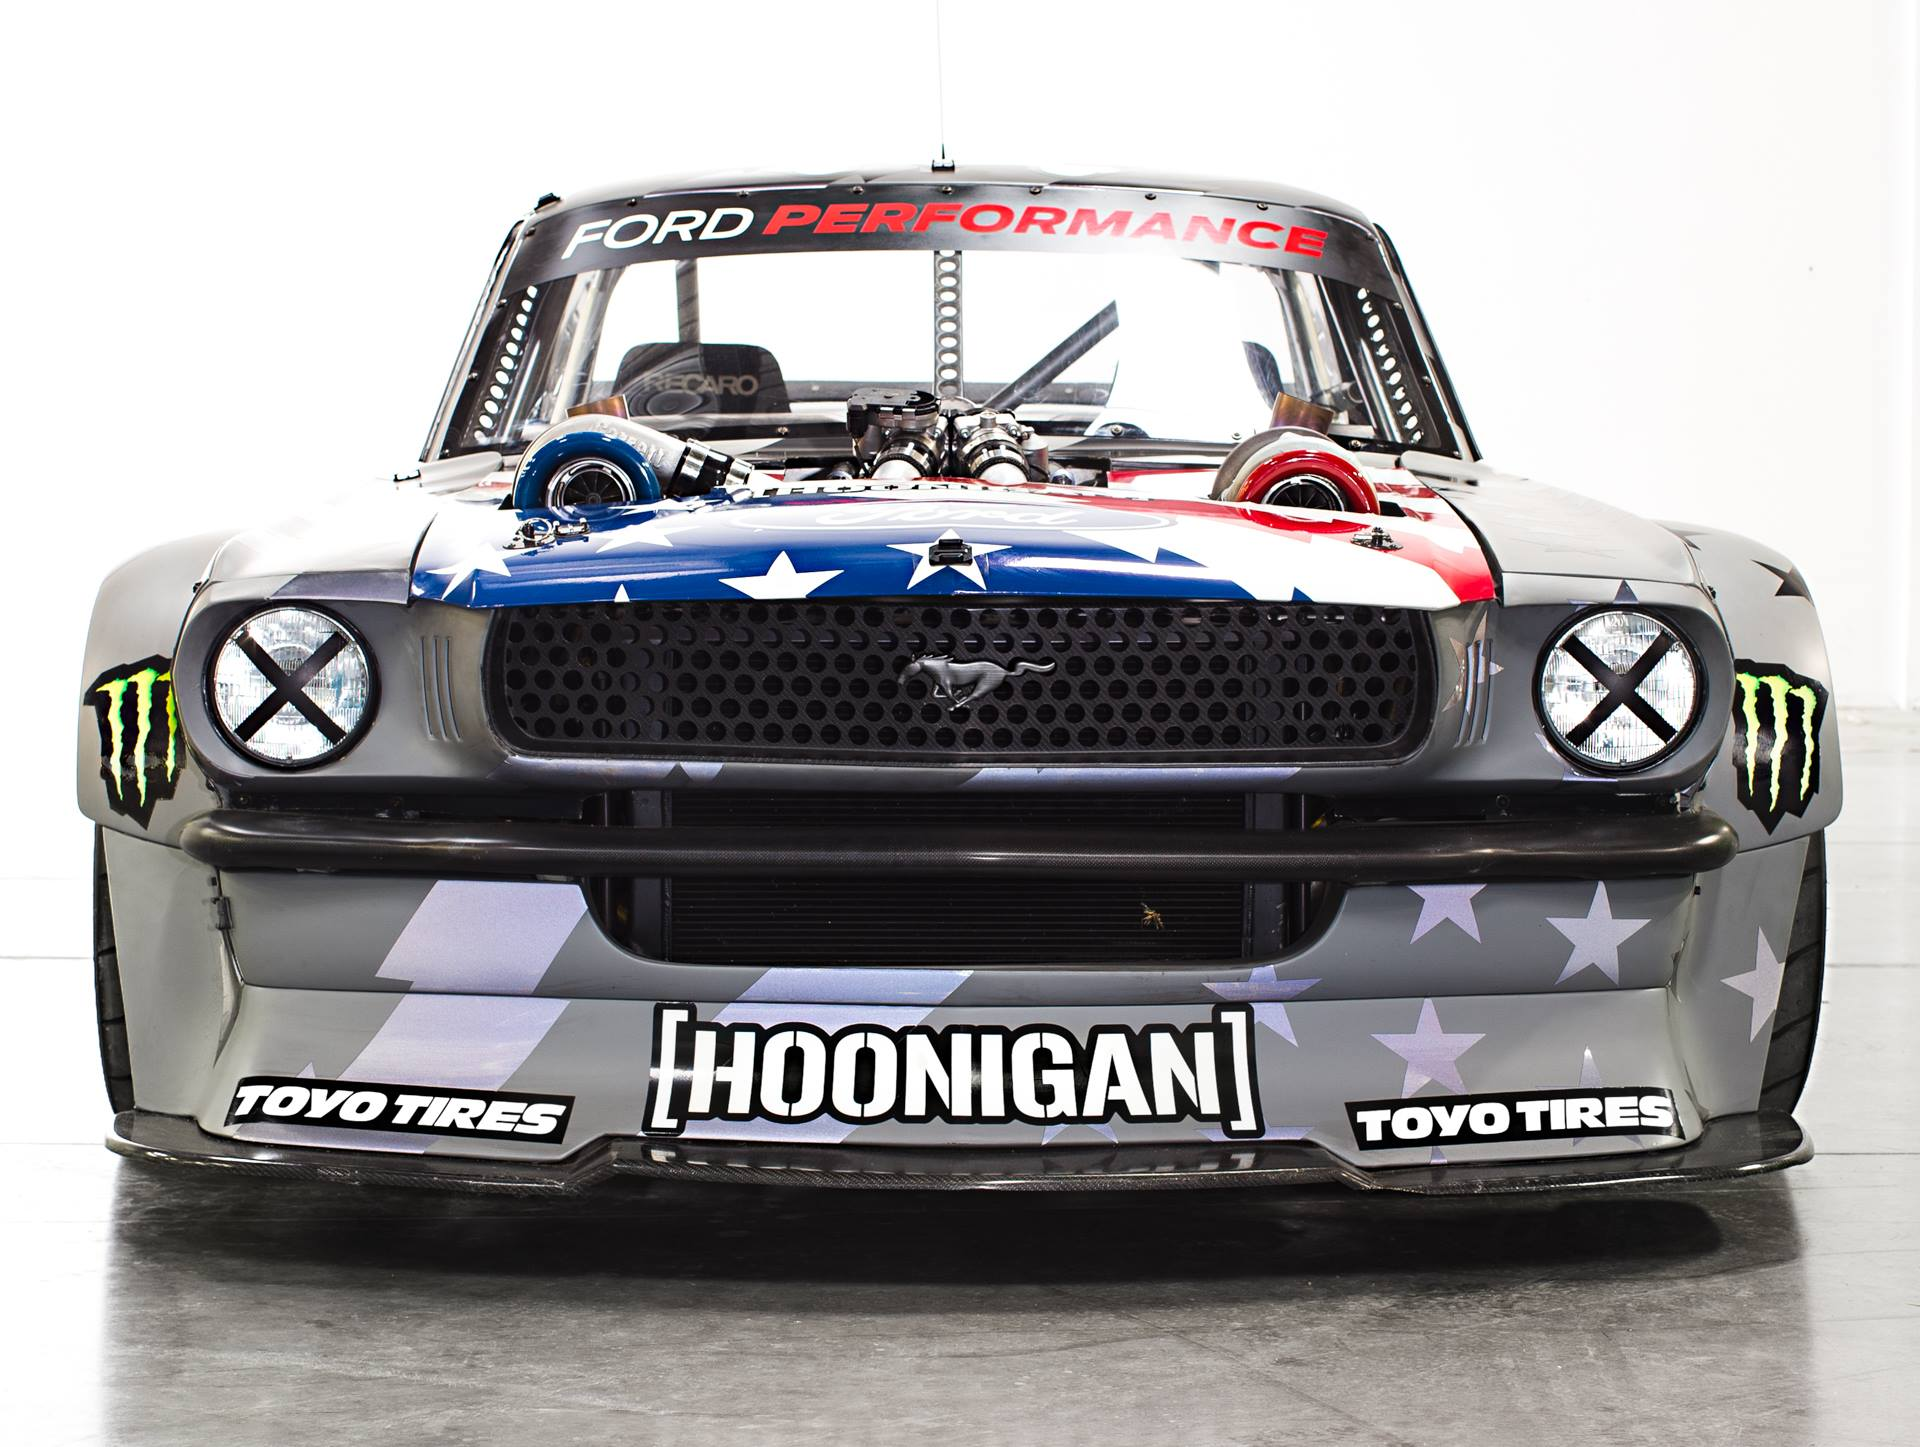 Ken blocks v2 hoonicorn mustang packs 1400 wild horses